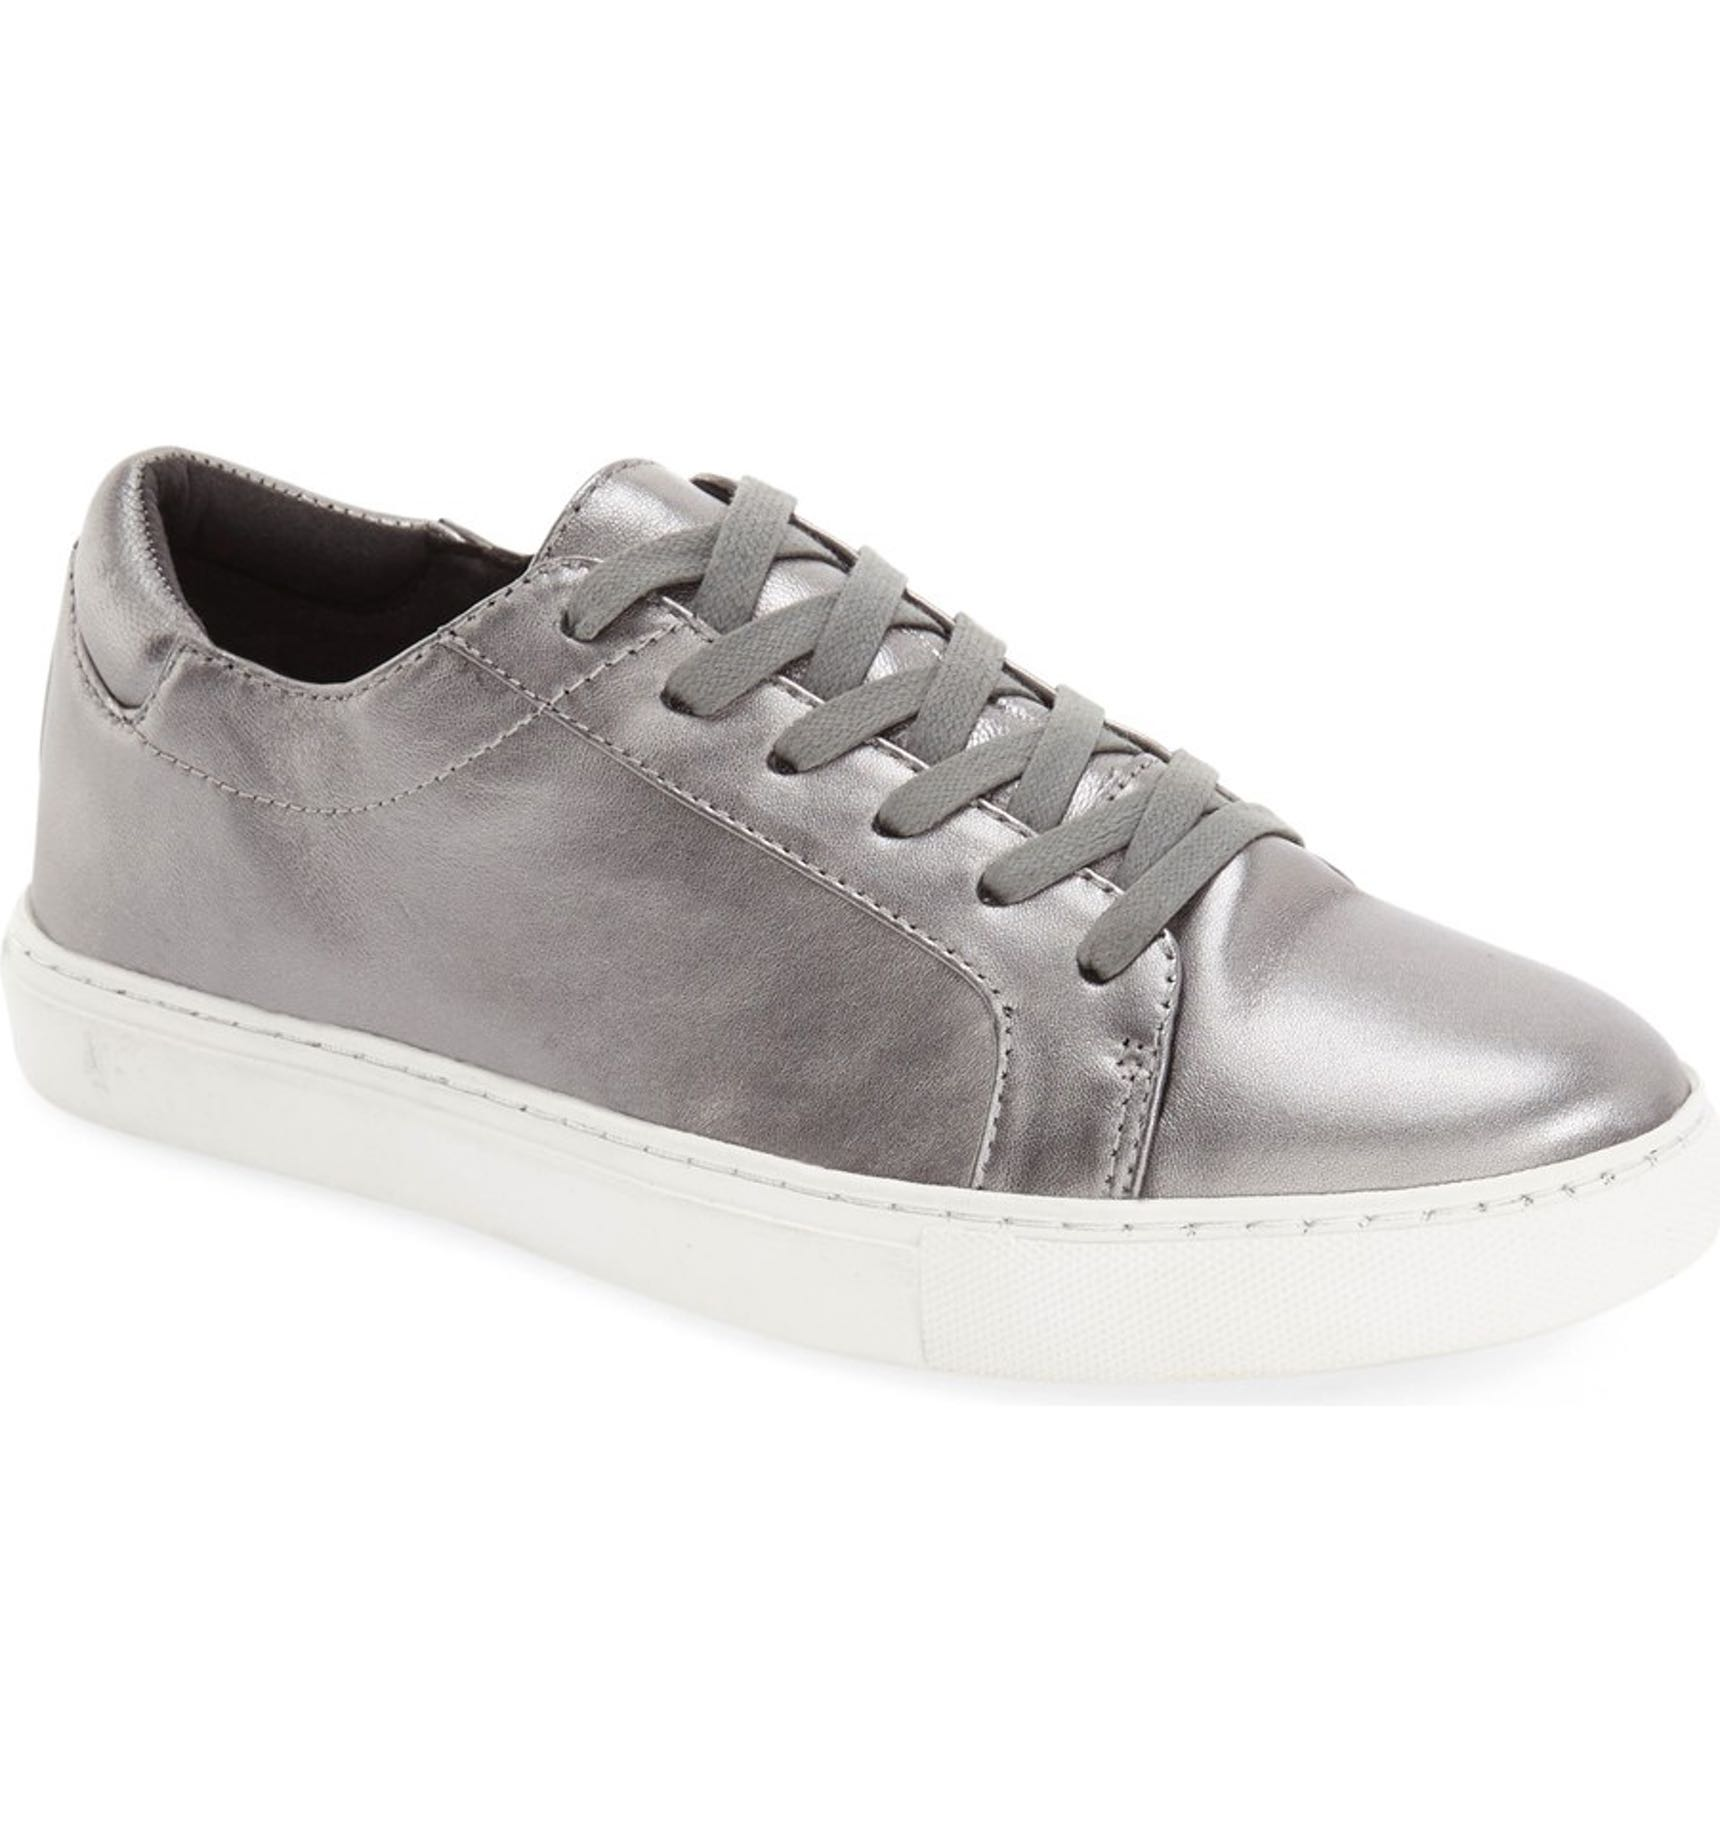 athleisure Kenneth Cole New York 'Kam' Sneaker